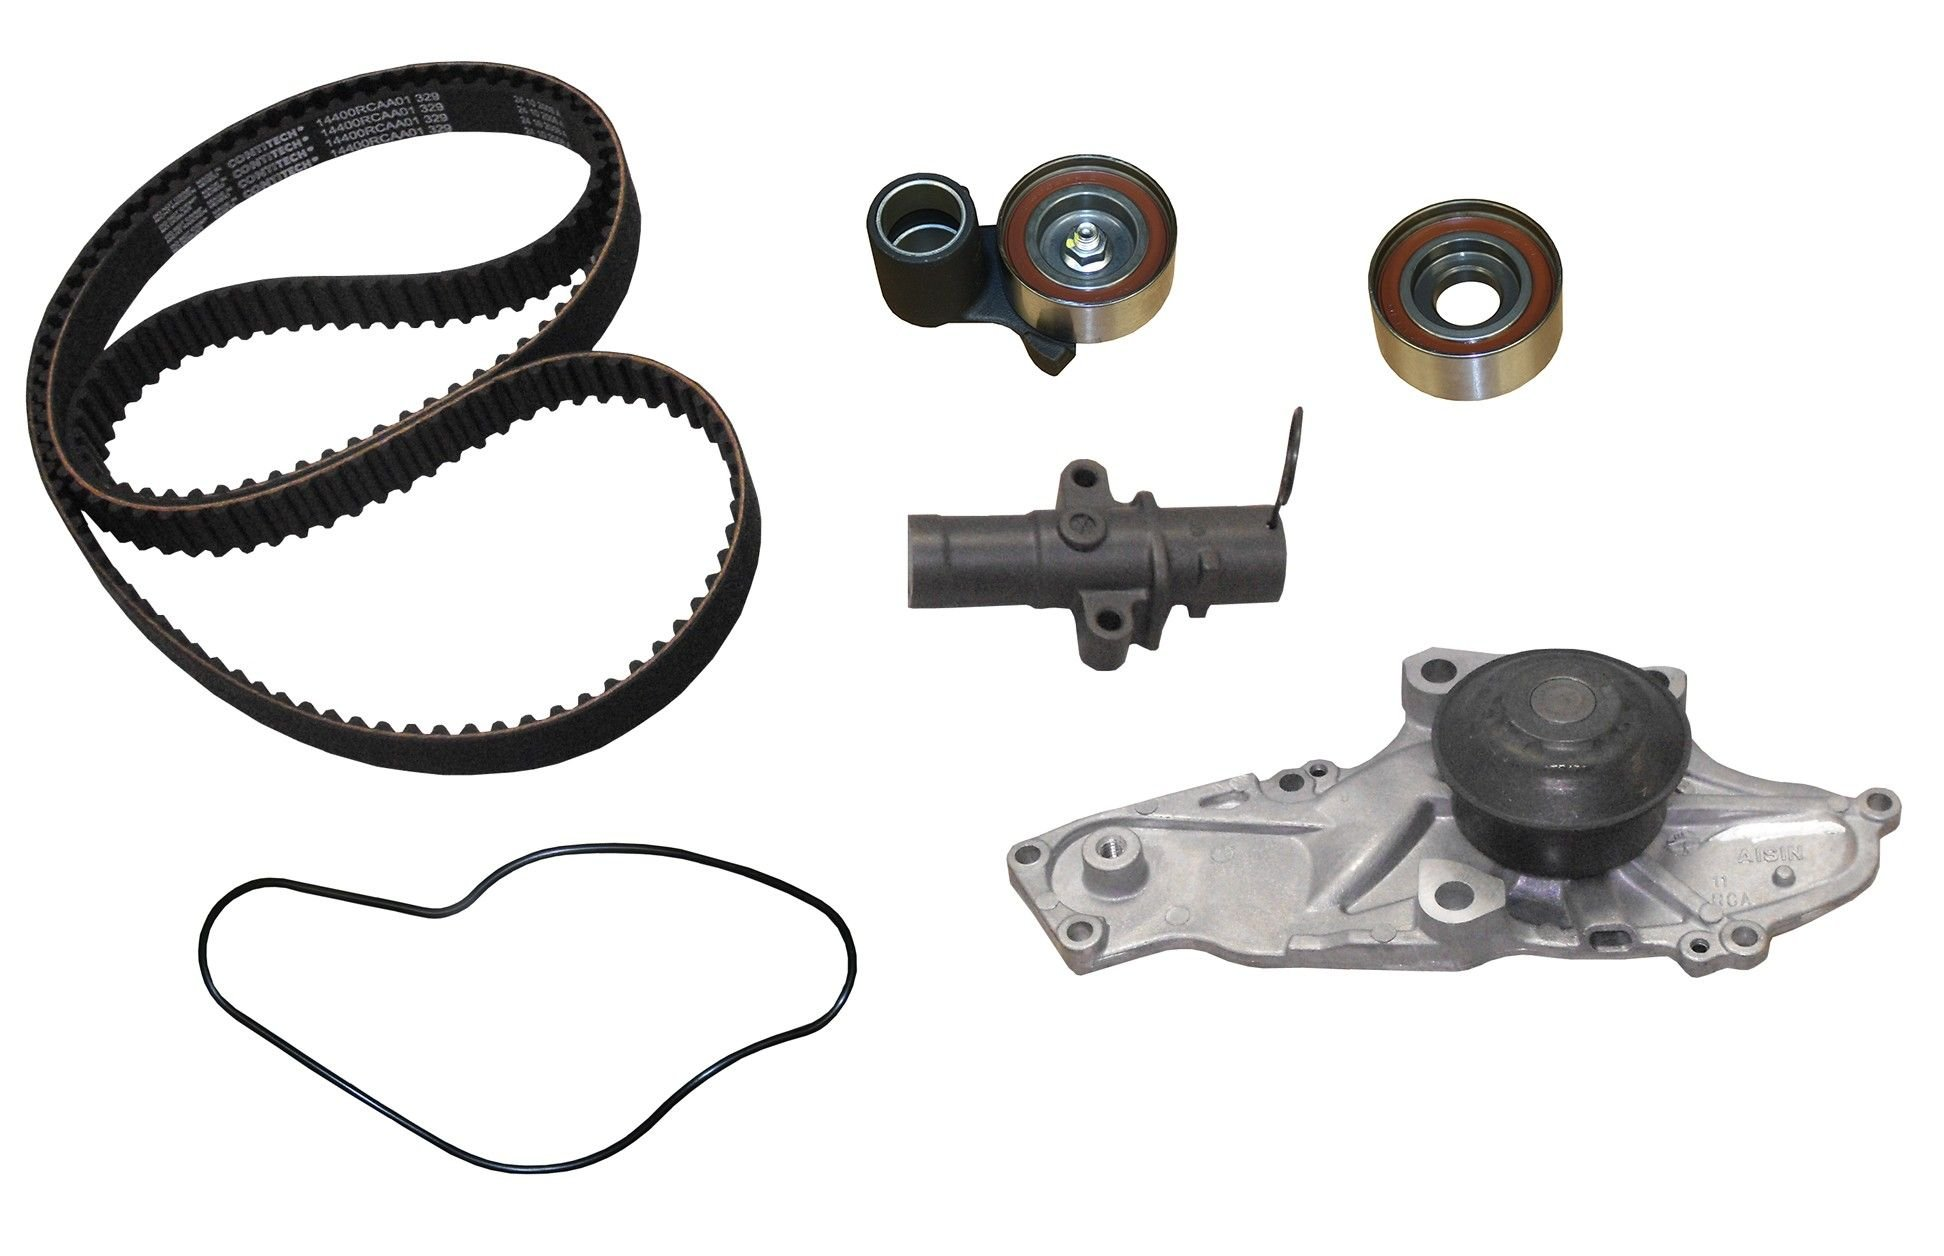 Honda Accord Crosstour Engine Timing Belt Kit With Water Pump Tensioner 2011 6 Cyl 35l Crp Tb329lk2 Pro Series Contitech Replaces Tb329lk1 Interference